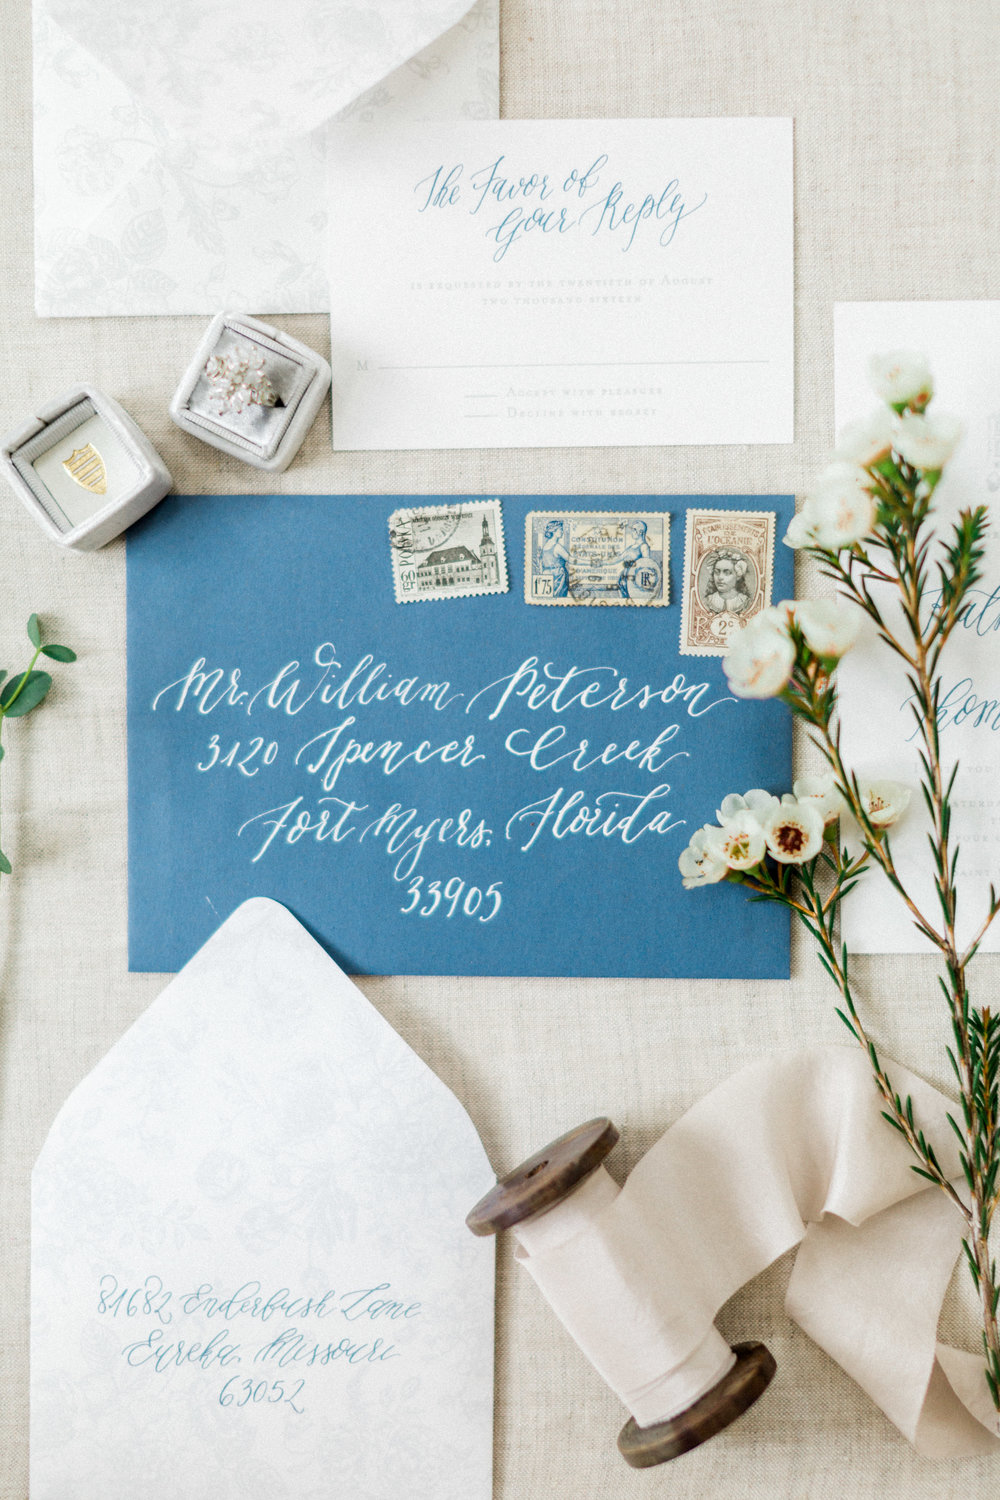 the cypress grove estate house in orlando florida, styled wedding bridal photo with invitation suit, ring and details